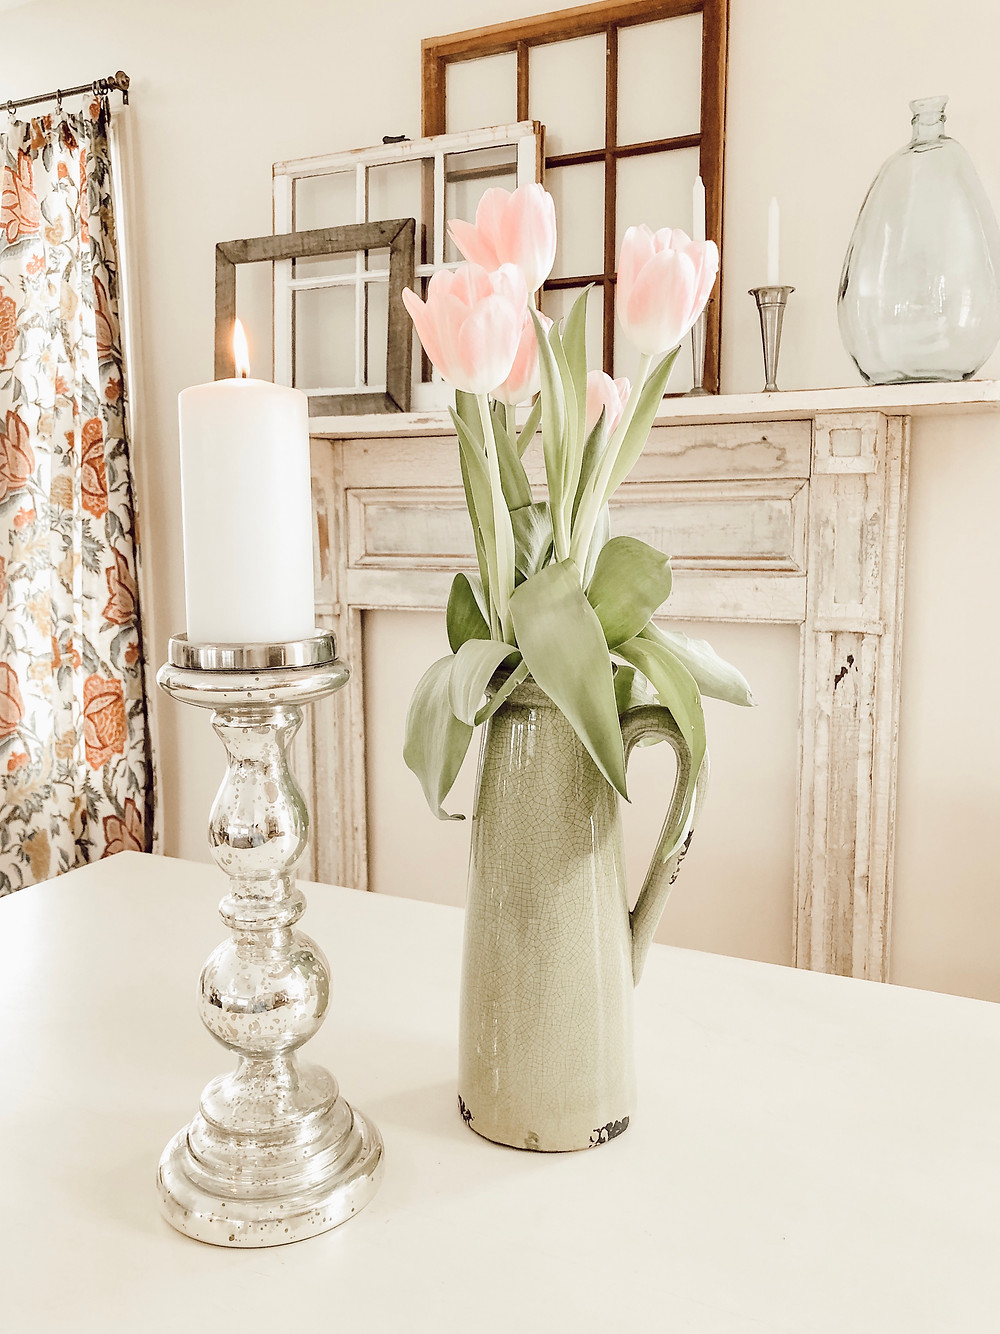 Vintage Fireplace Mantel Install and Decorating Ideas